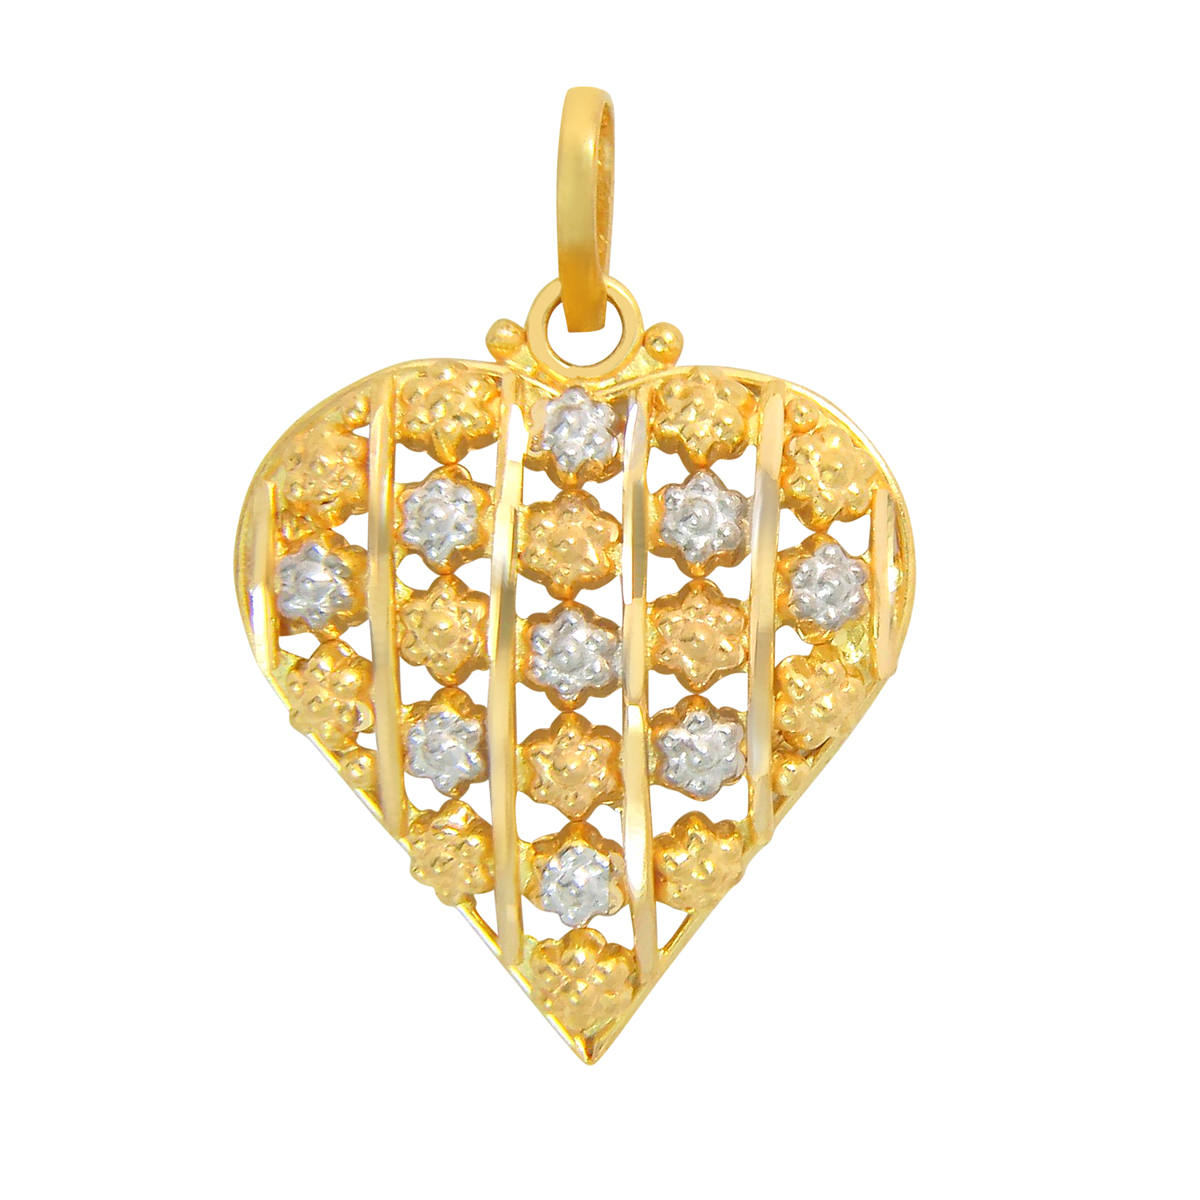 Popley 22Kt Gold Bandhan Pendant - A6